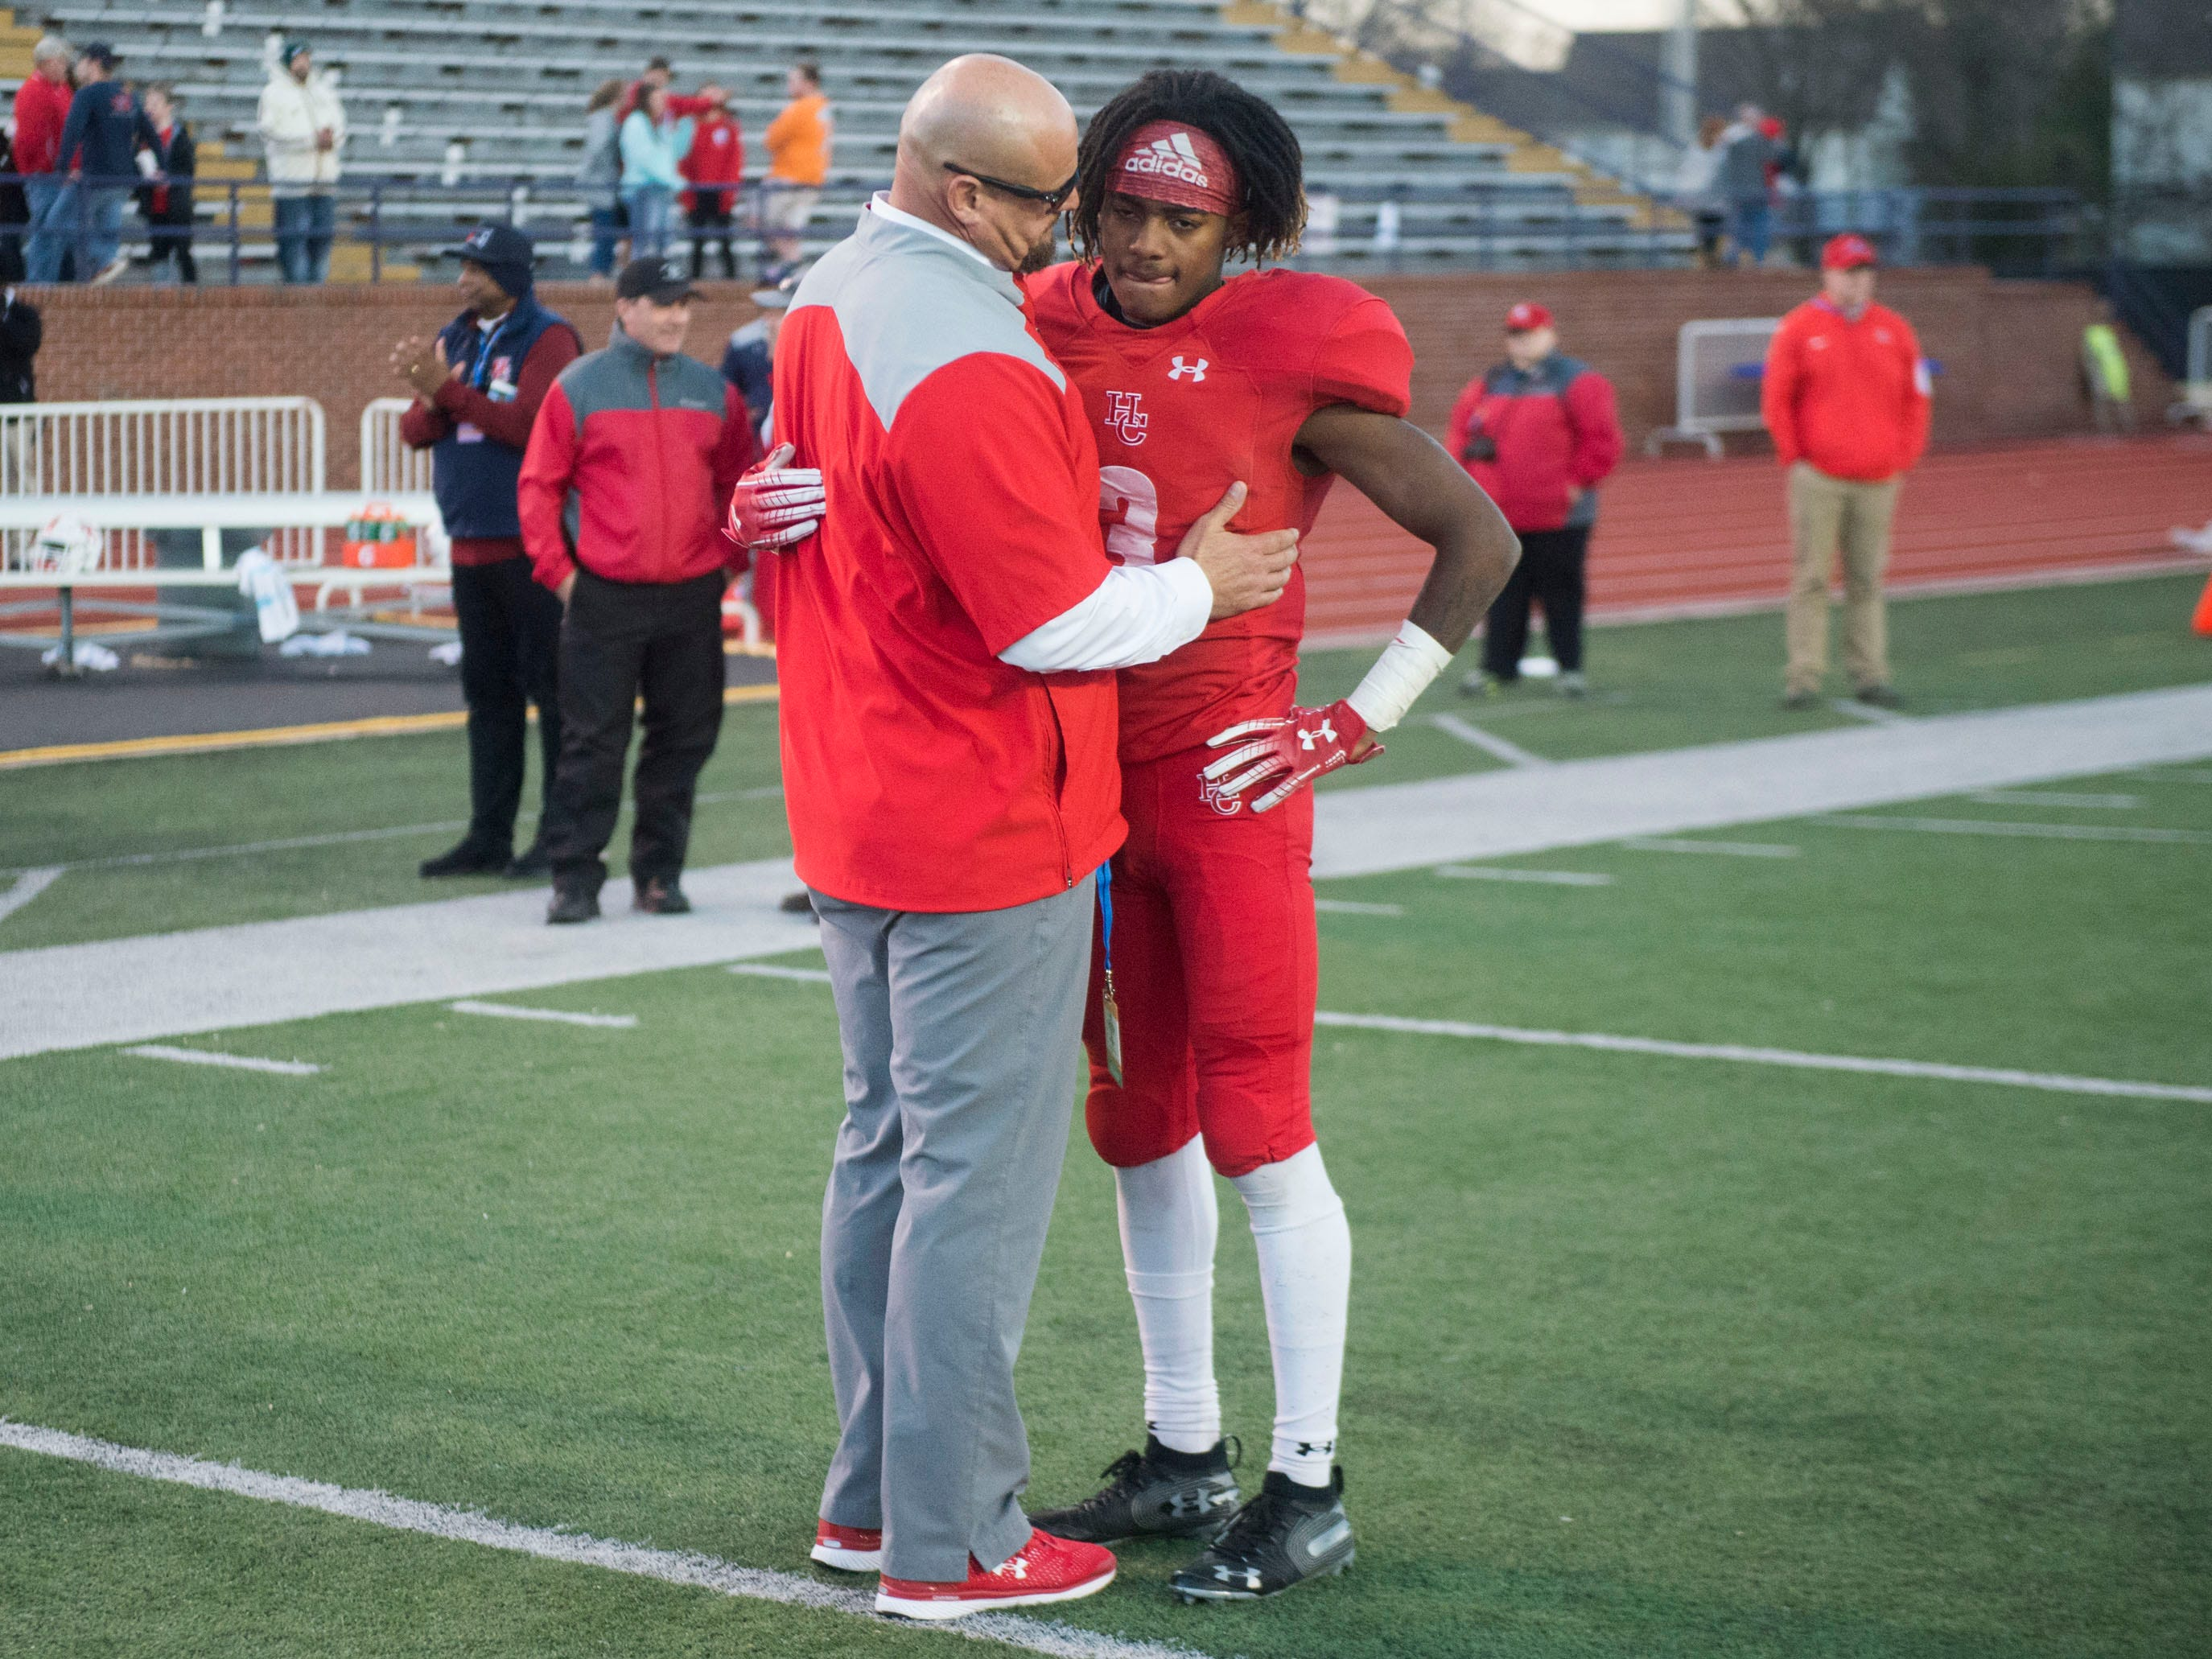 Henry County Football Coach James Counce Jr. talks with Tavion Kendley (3) after the loss to Knoxville Central in the Class 5A BlueCross Bowl at Tucker Stadium on Sunday, December 2, 2018.